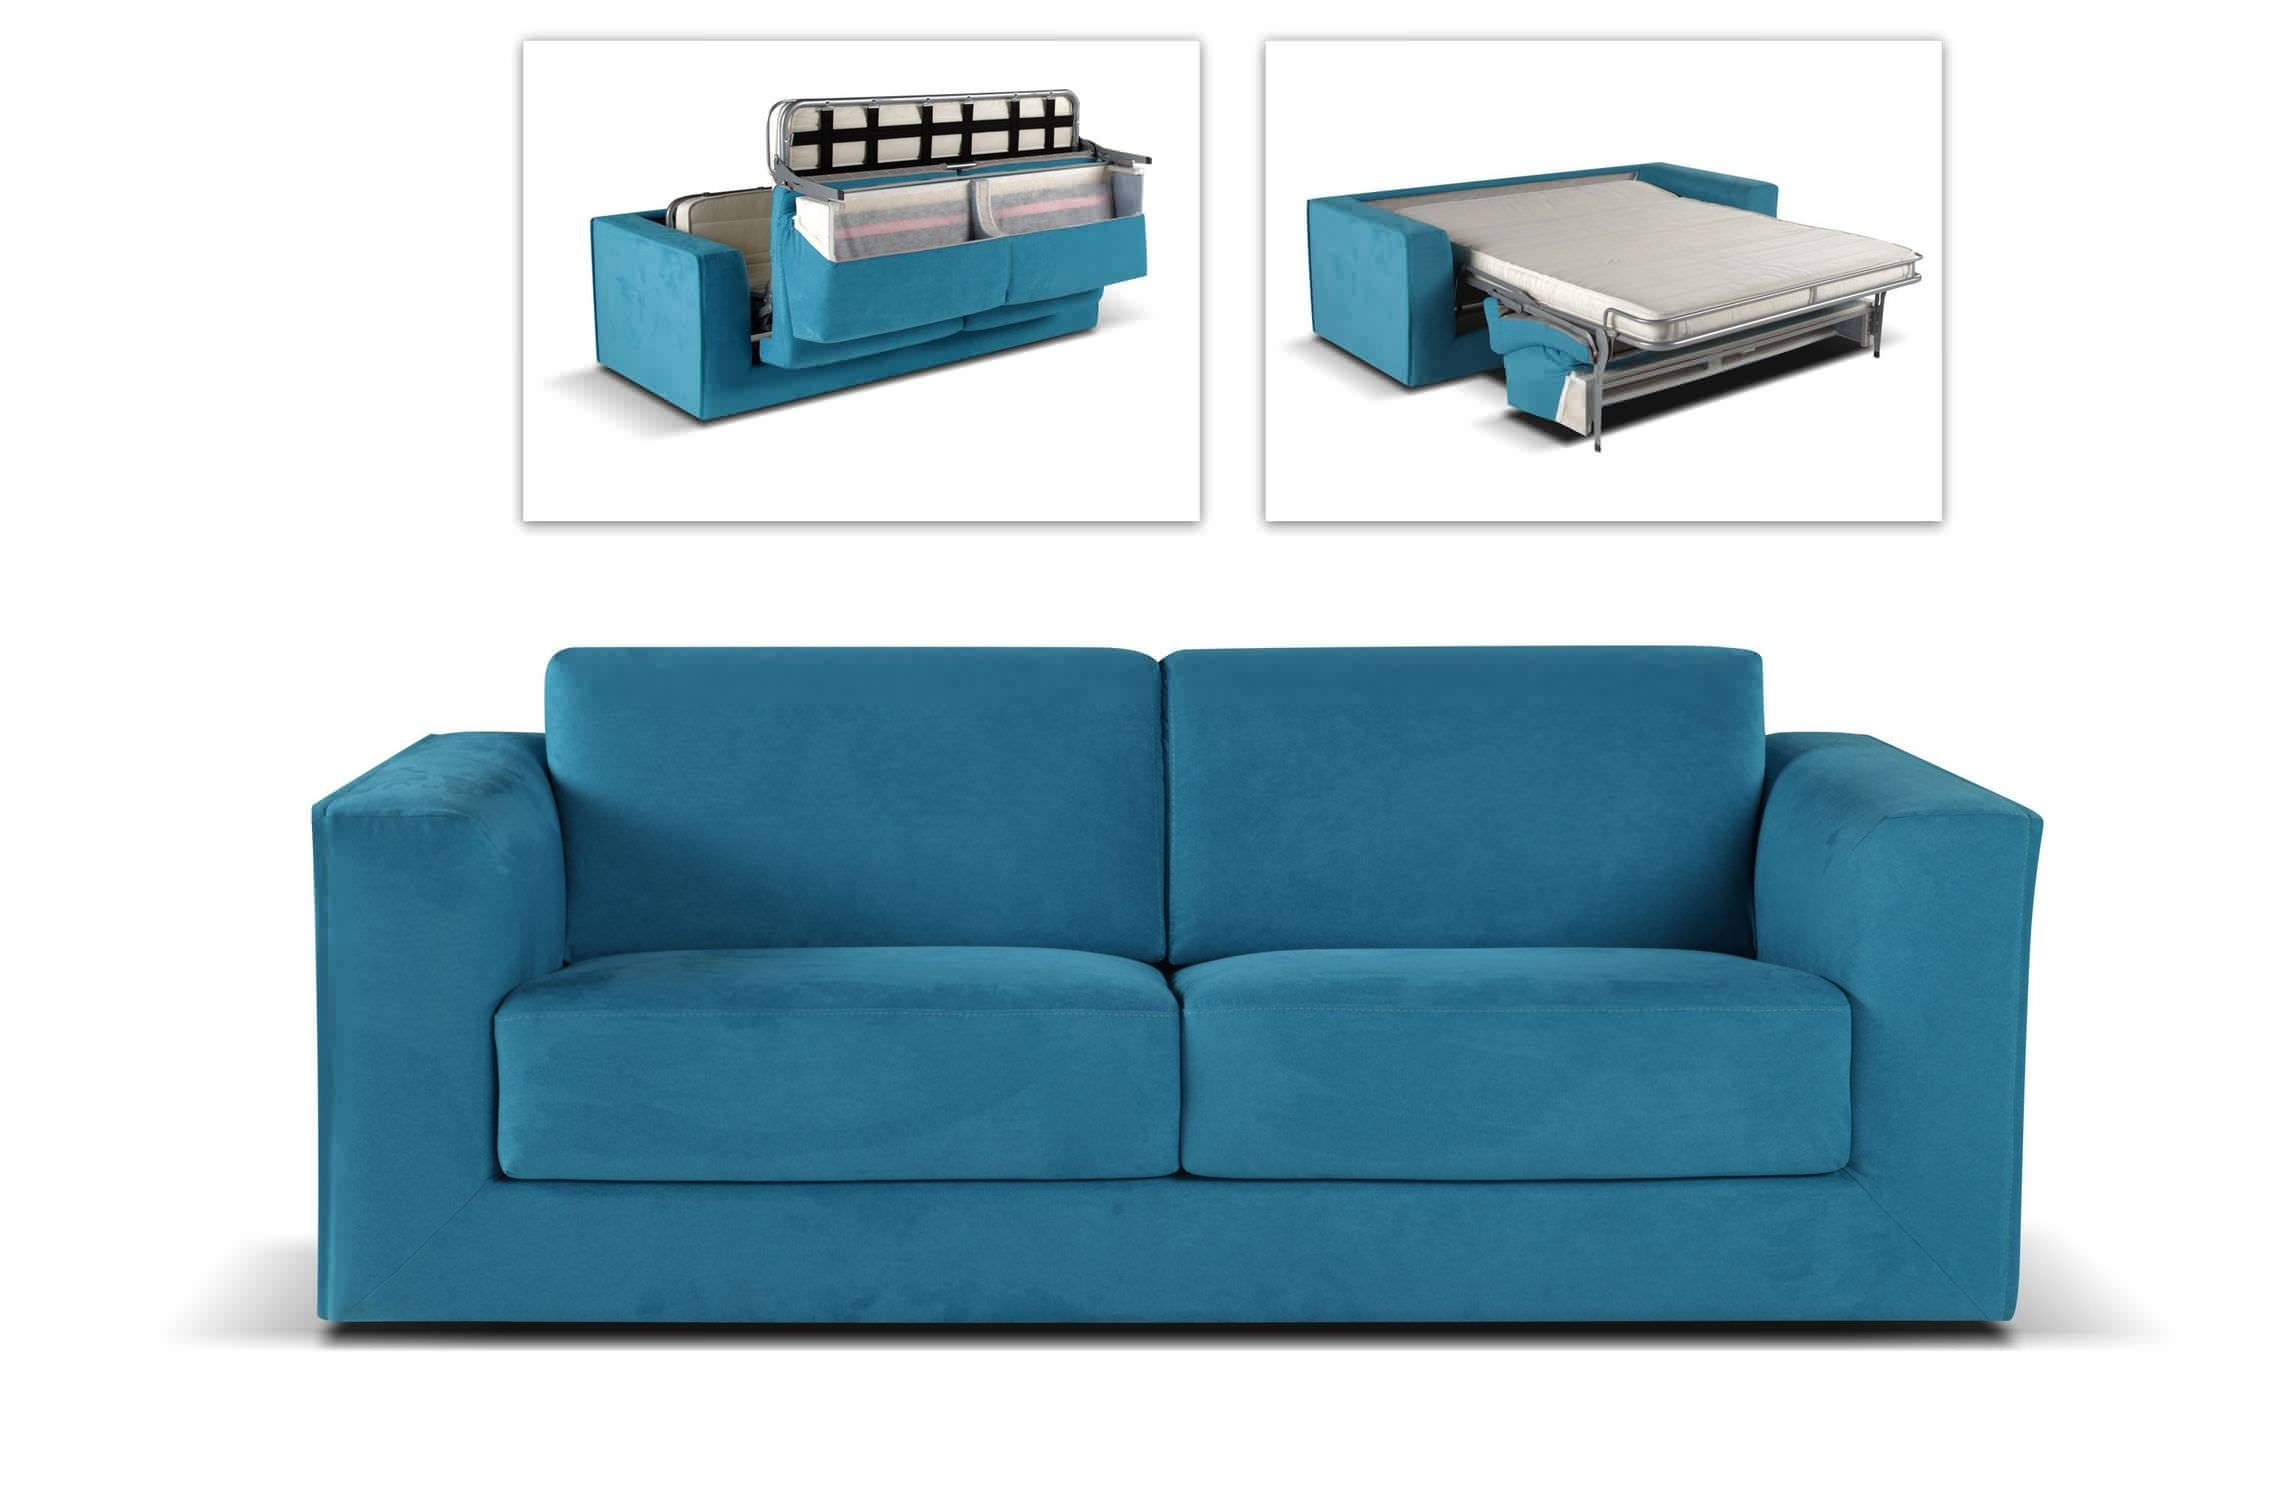 Ikea sofa beds discontinued ikea sofa beds ikea for Furniture and beds